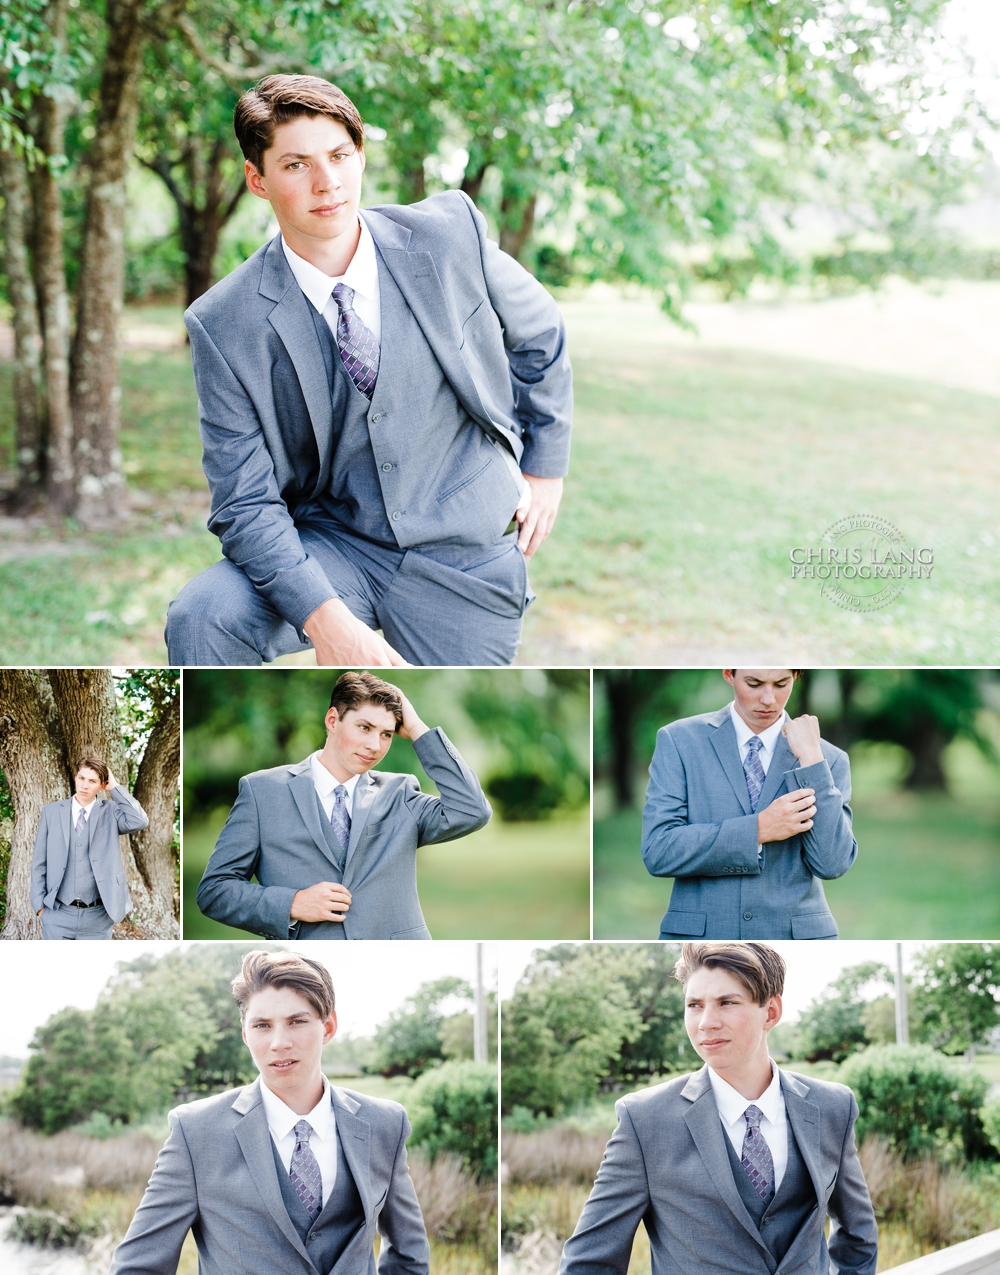 image of young man modeling a grey suit and tie under a southern oak tree - Fashion ideas  for boys - Wilmington NC Photographers